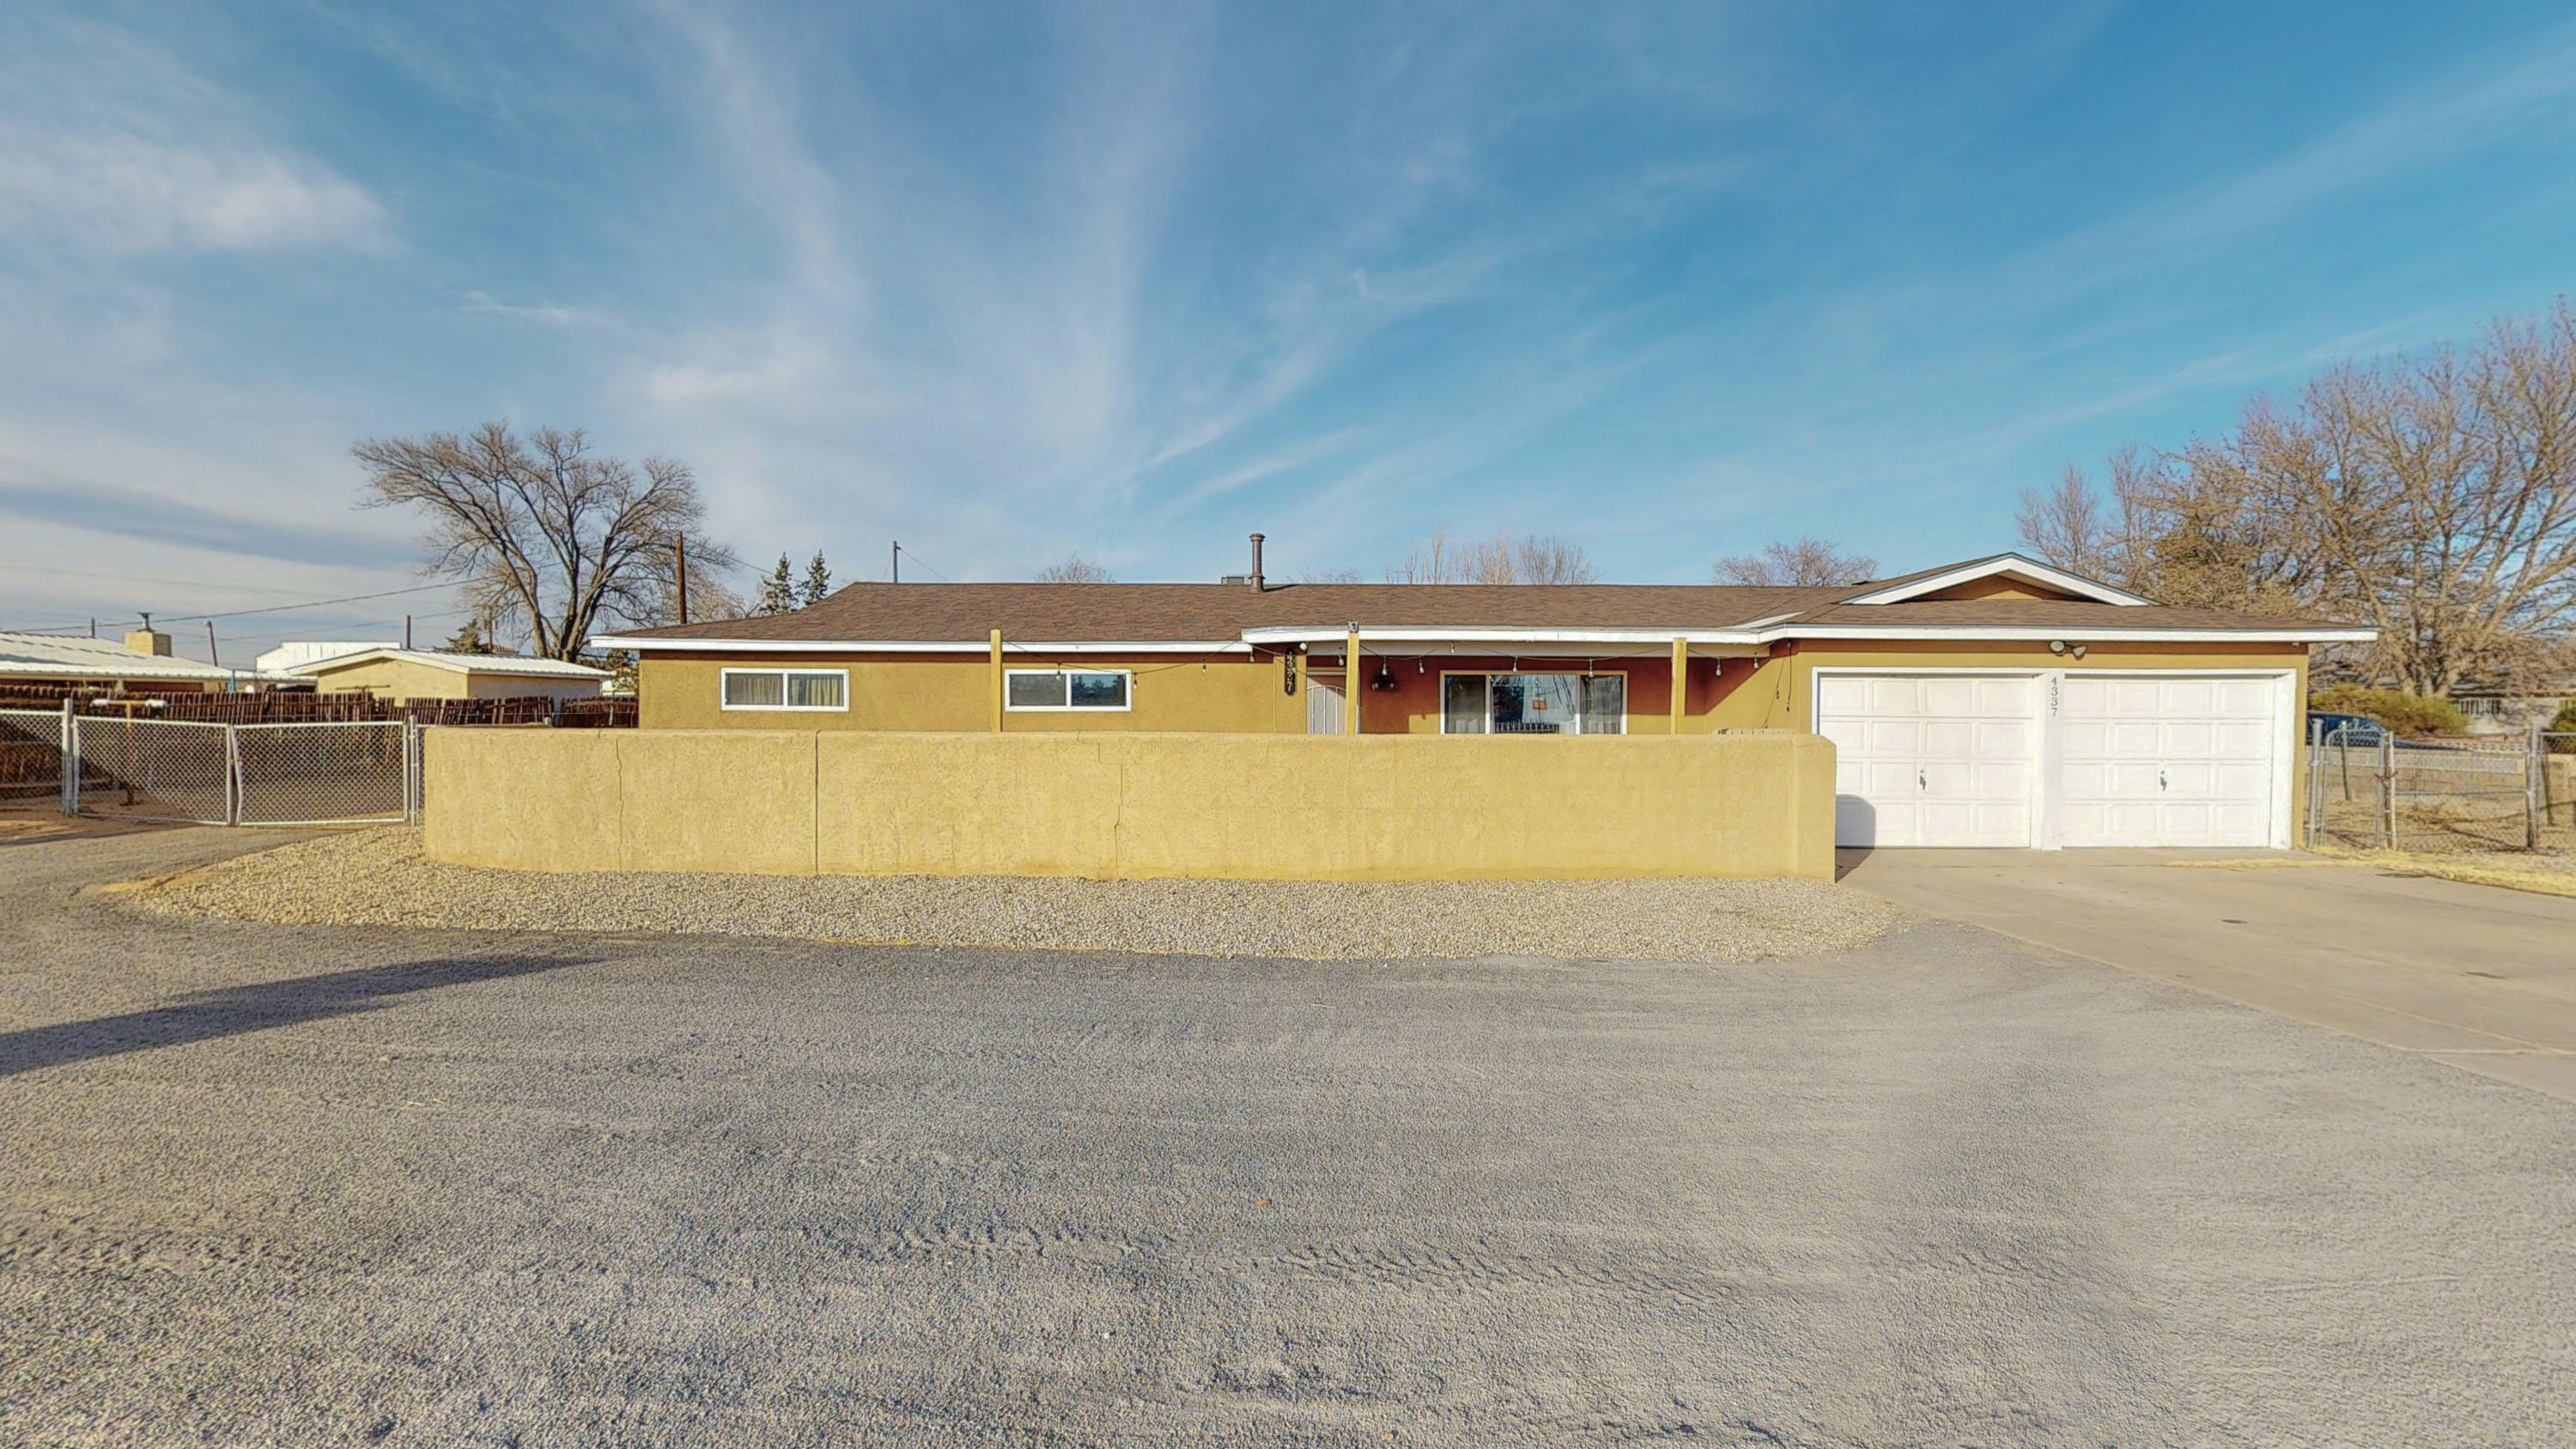 Immaculate condition, this home shows pride of ownership.  Beautiful wood floors,stainless steel appliances, Family room w/fp or 3rd bdroom.  ONLY ONE GARAGE DOOR WITH REMOTE.  Large storage shed on property.  Half acre with access.